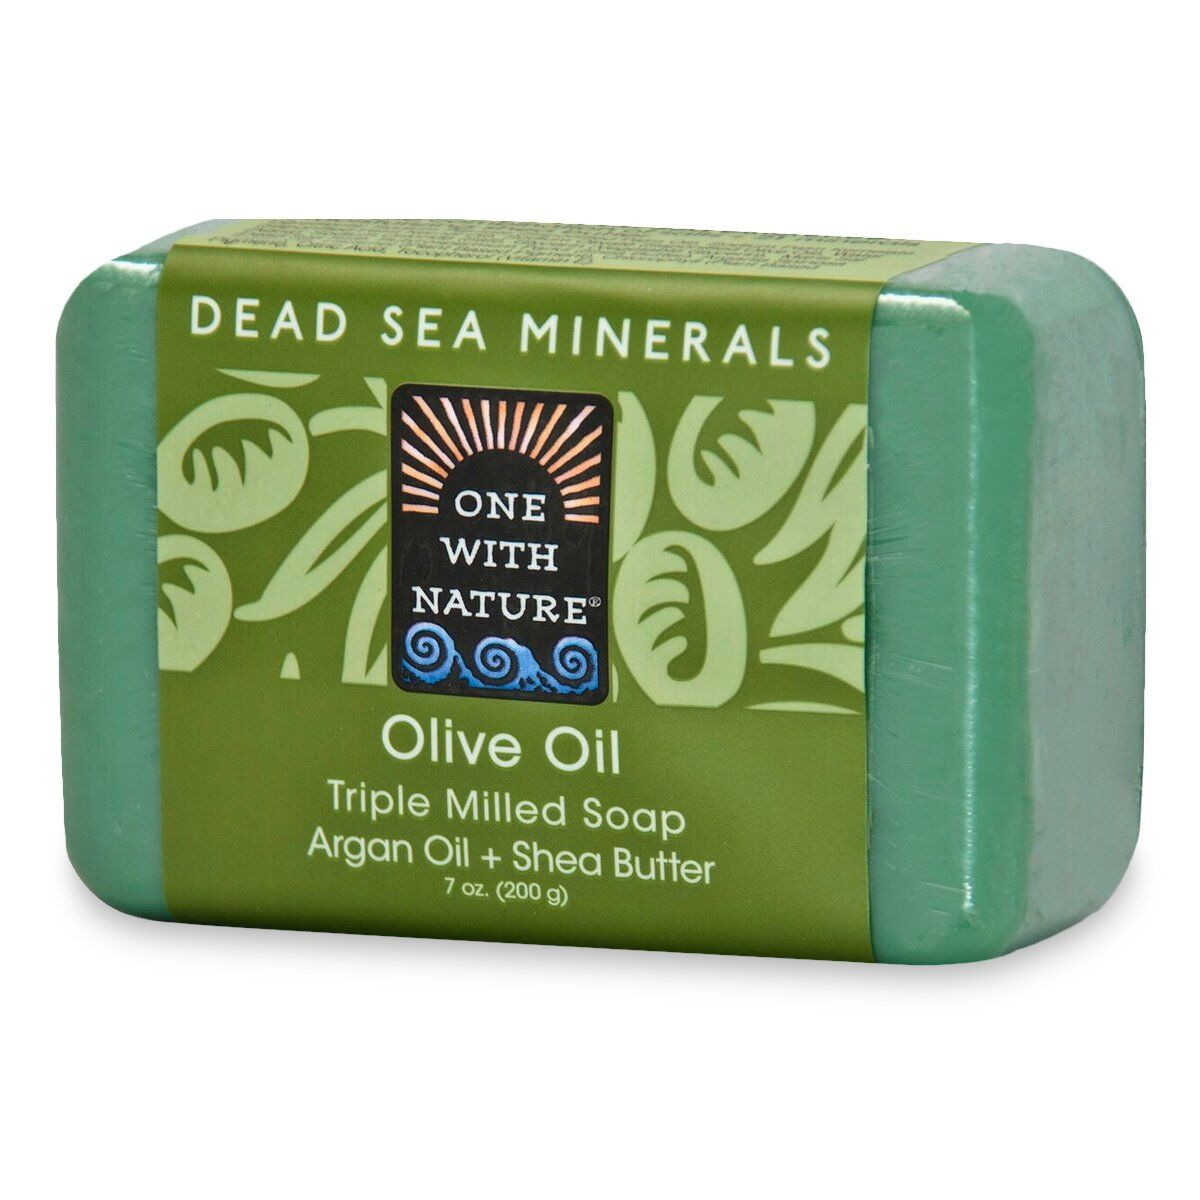 One With Nature - Dead Sea Mineral Soap - Olive Oil